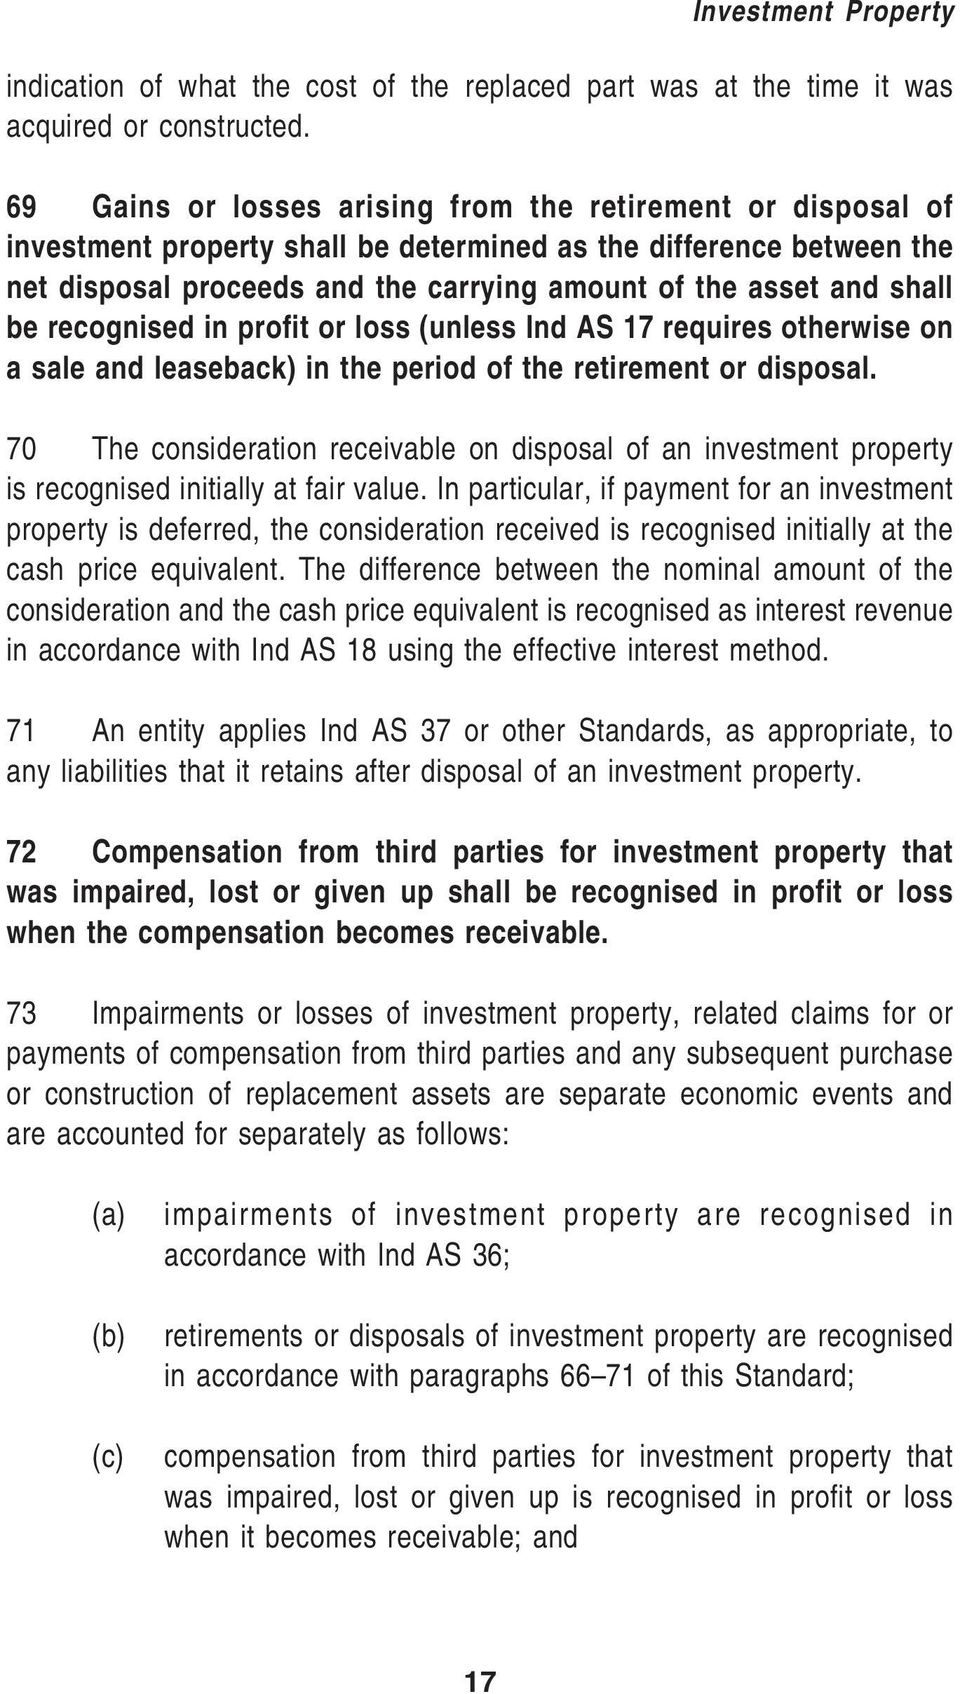 shall be recognised in profit or loss (unless Ind AS 17 requires otherwise on a sale and leaseback) in the period of the retirement or disposal.